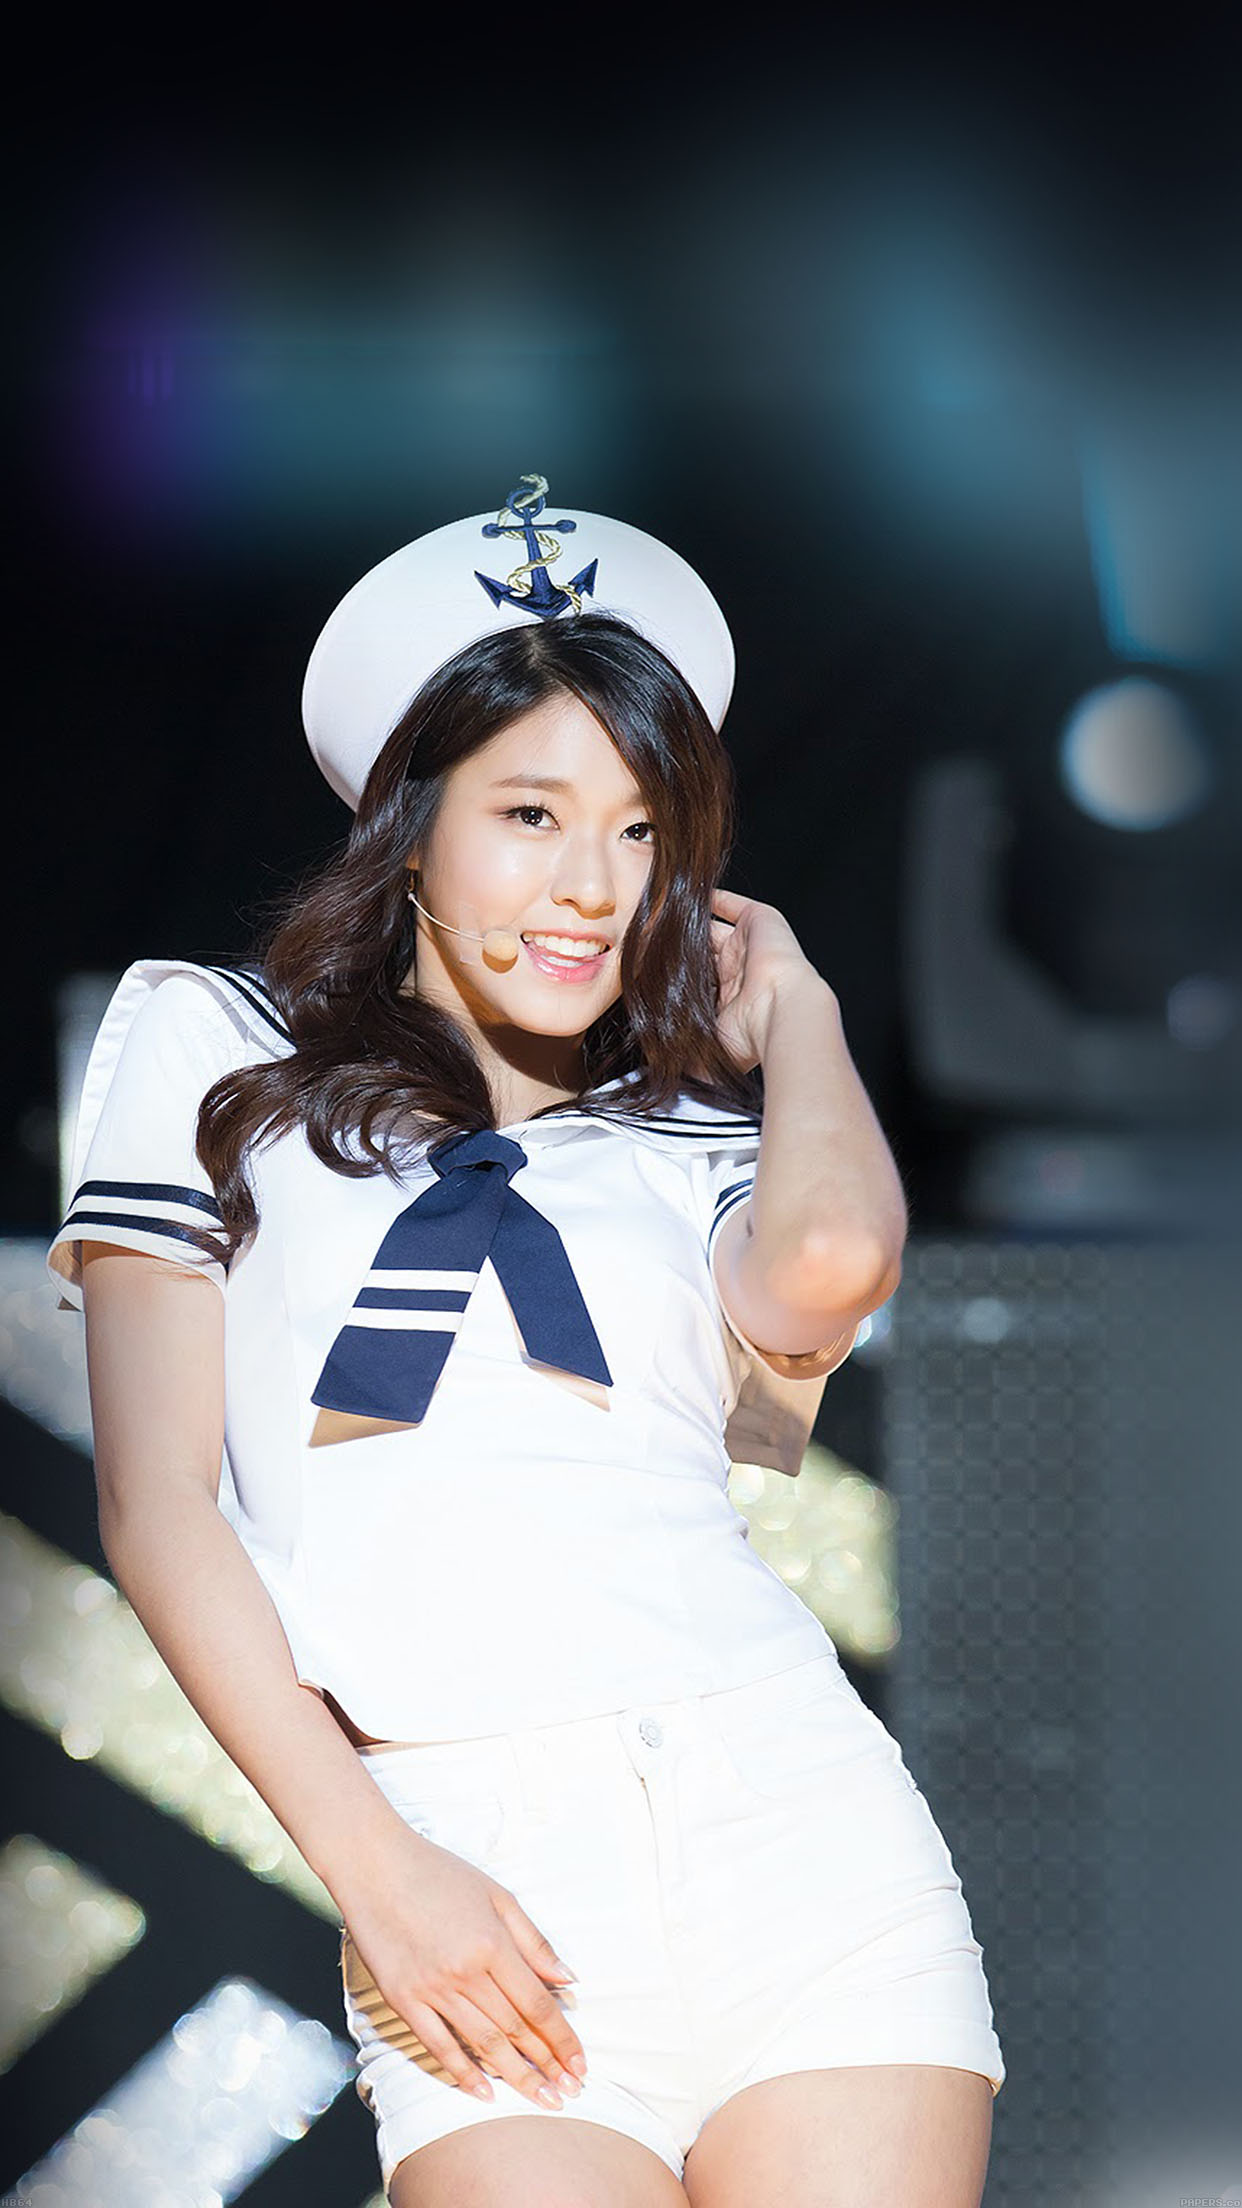 Aoa Kpop Seol Hyun Dance Android wallpaper